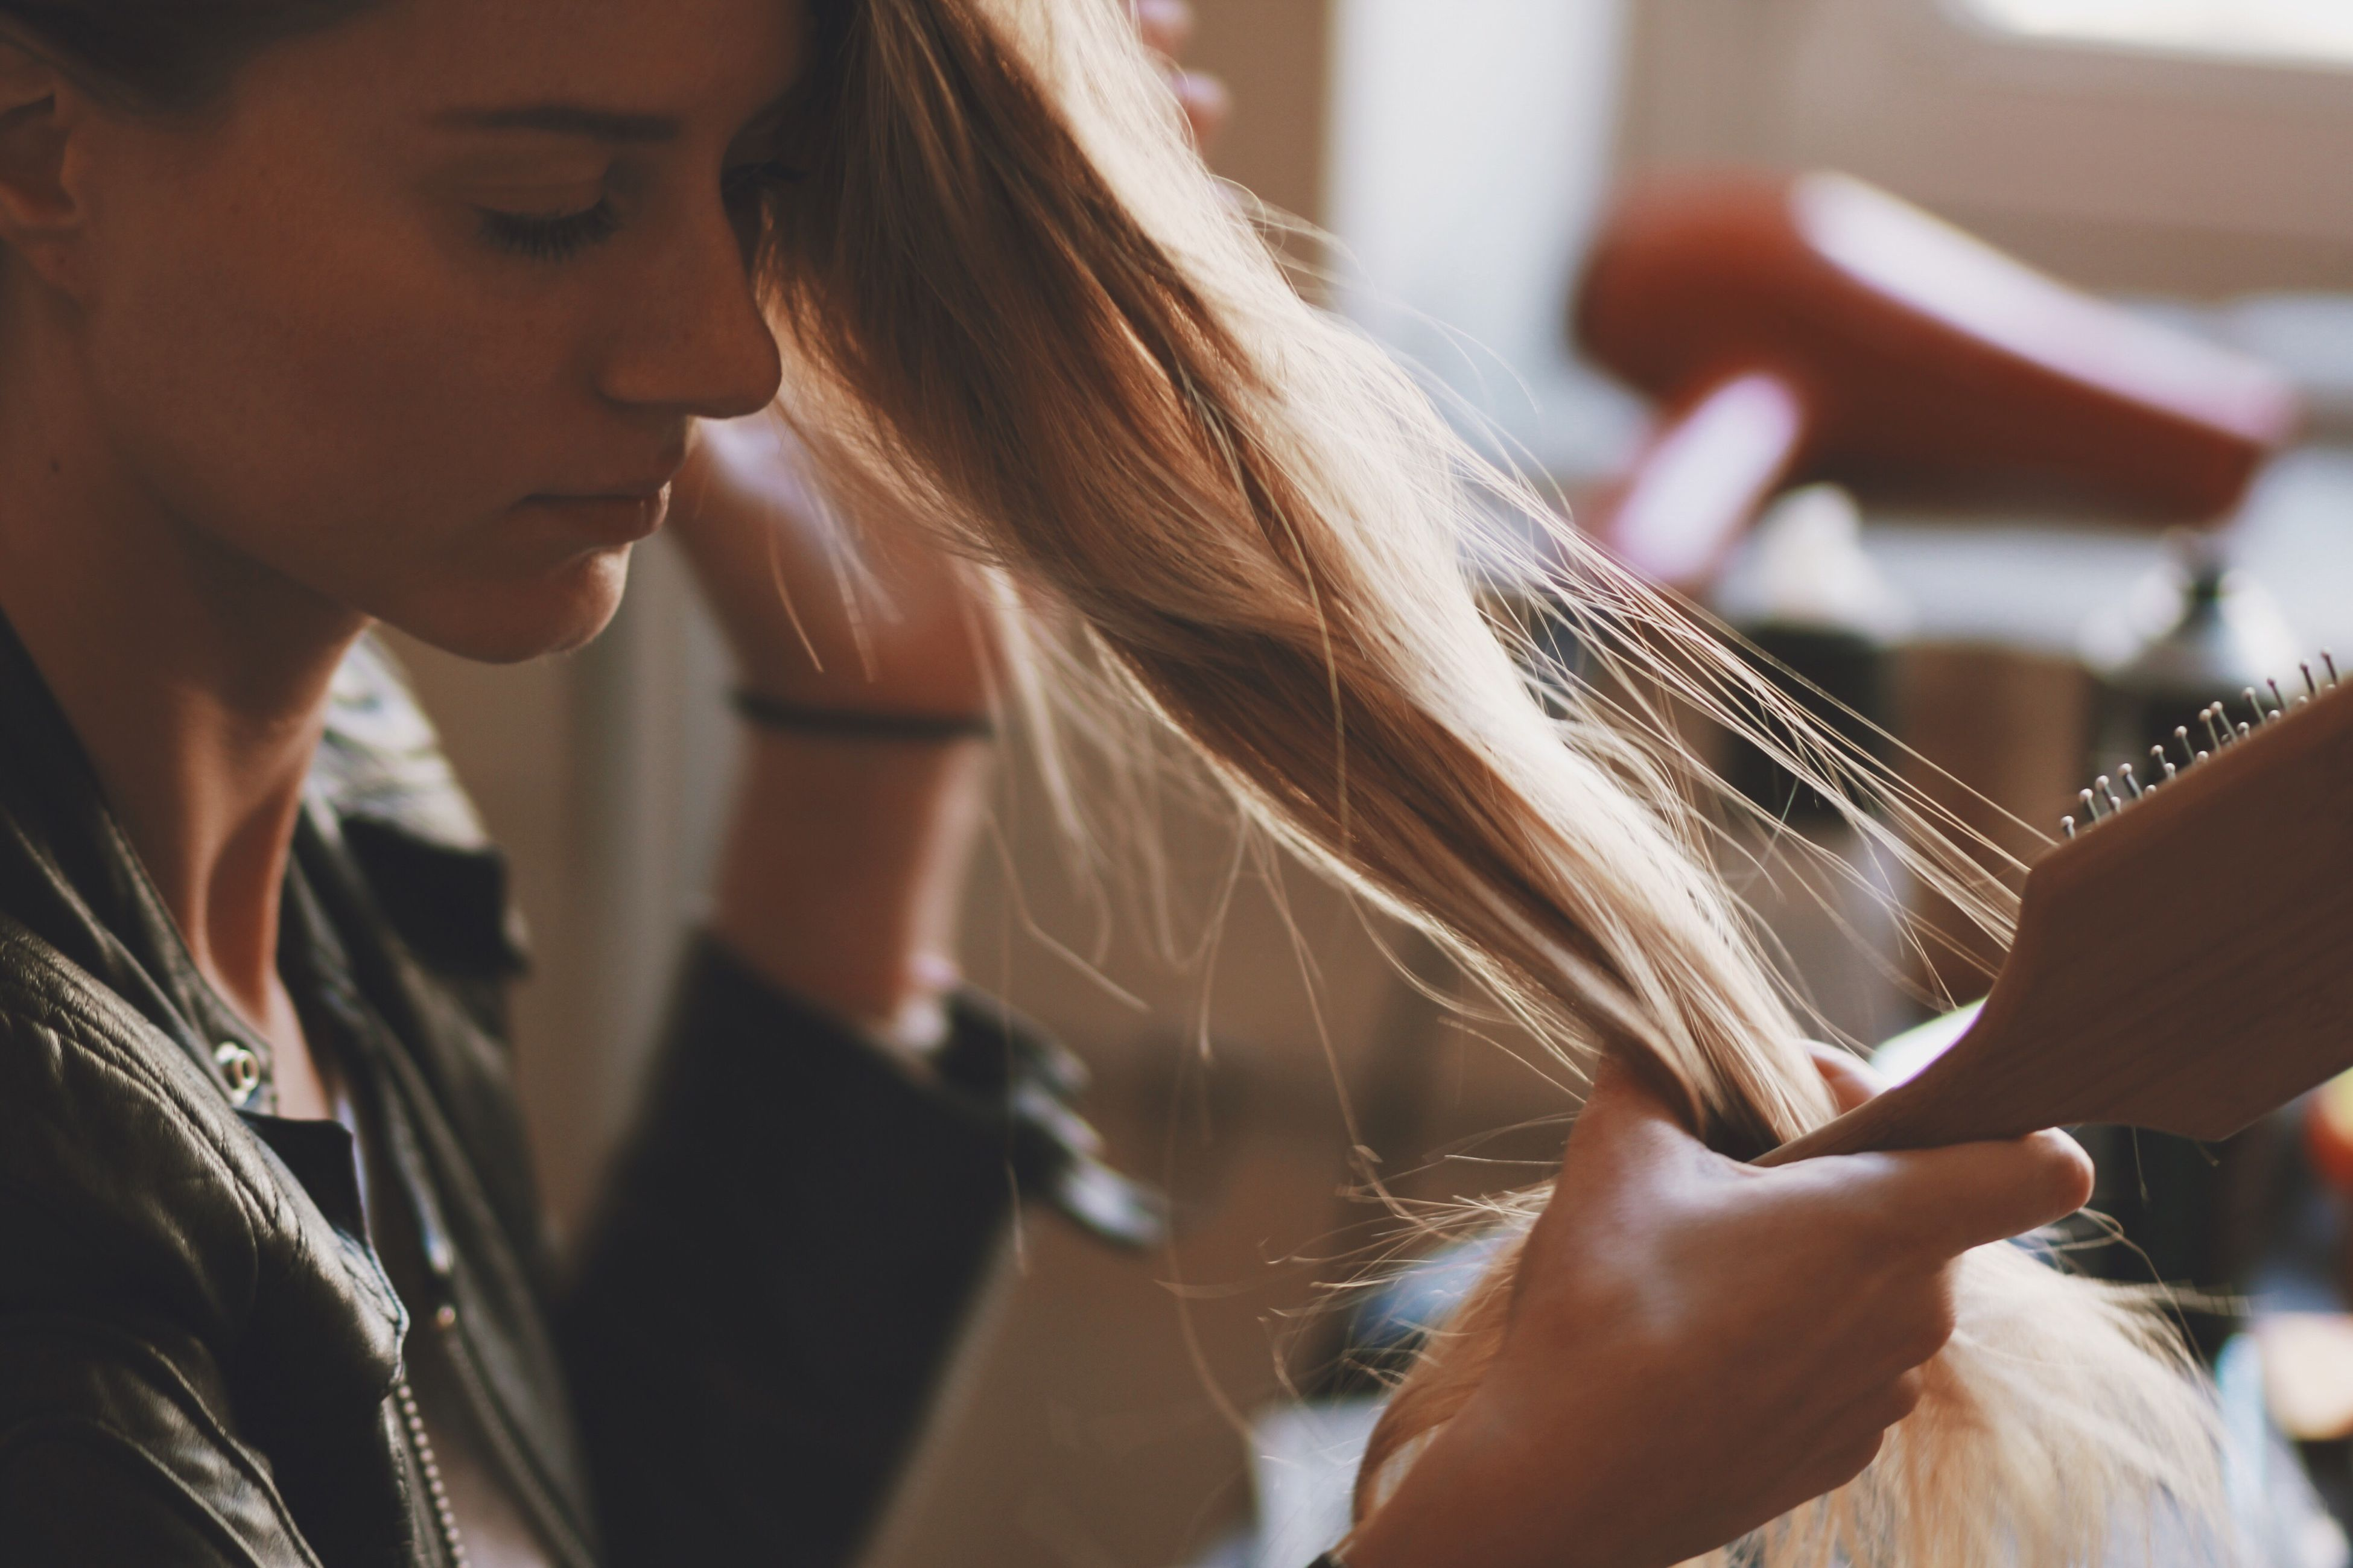 holding, leisure activity, lifestyles, person, indoors, long hair, blond hair, focus on foreground, beauty, human hair, selective focus, casual clothing, young adult, looking, hair care